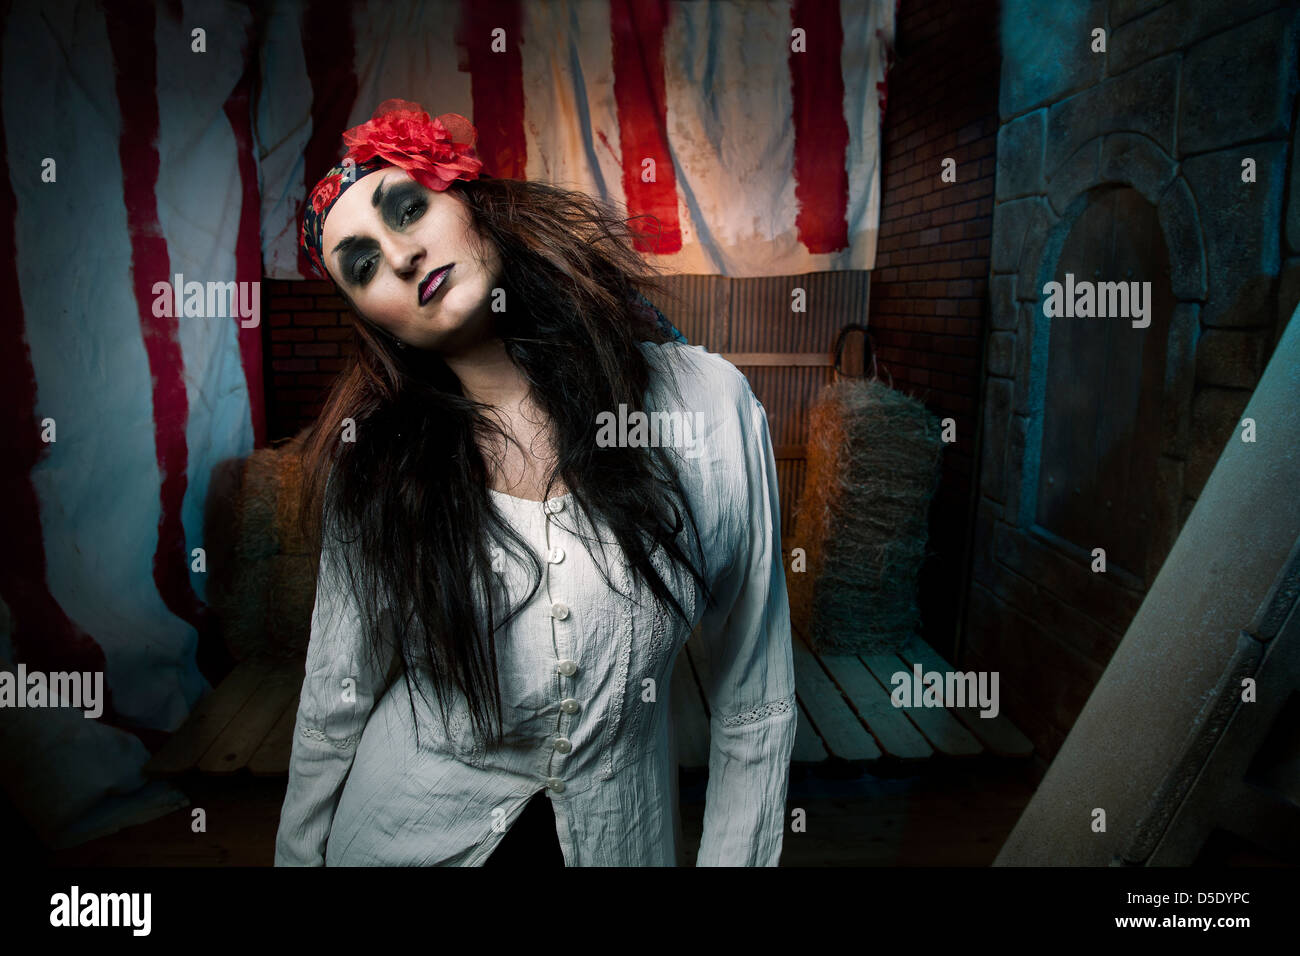 Wicked gypsy girl standing in front of creepy background - Stock Image